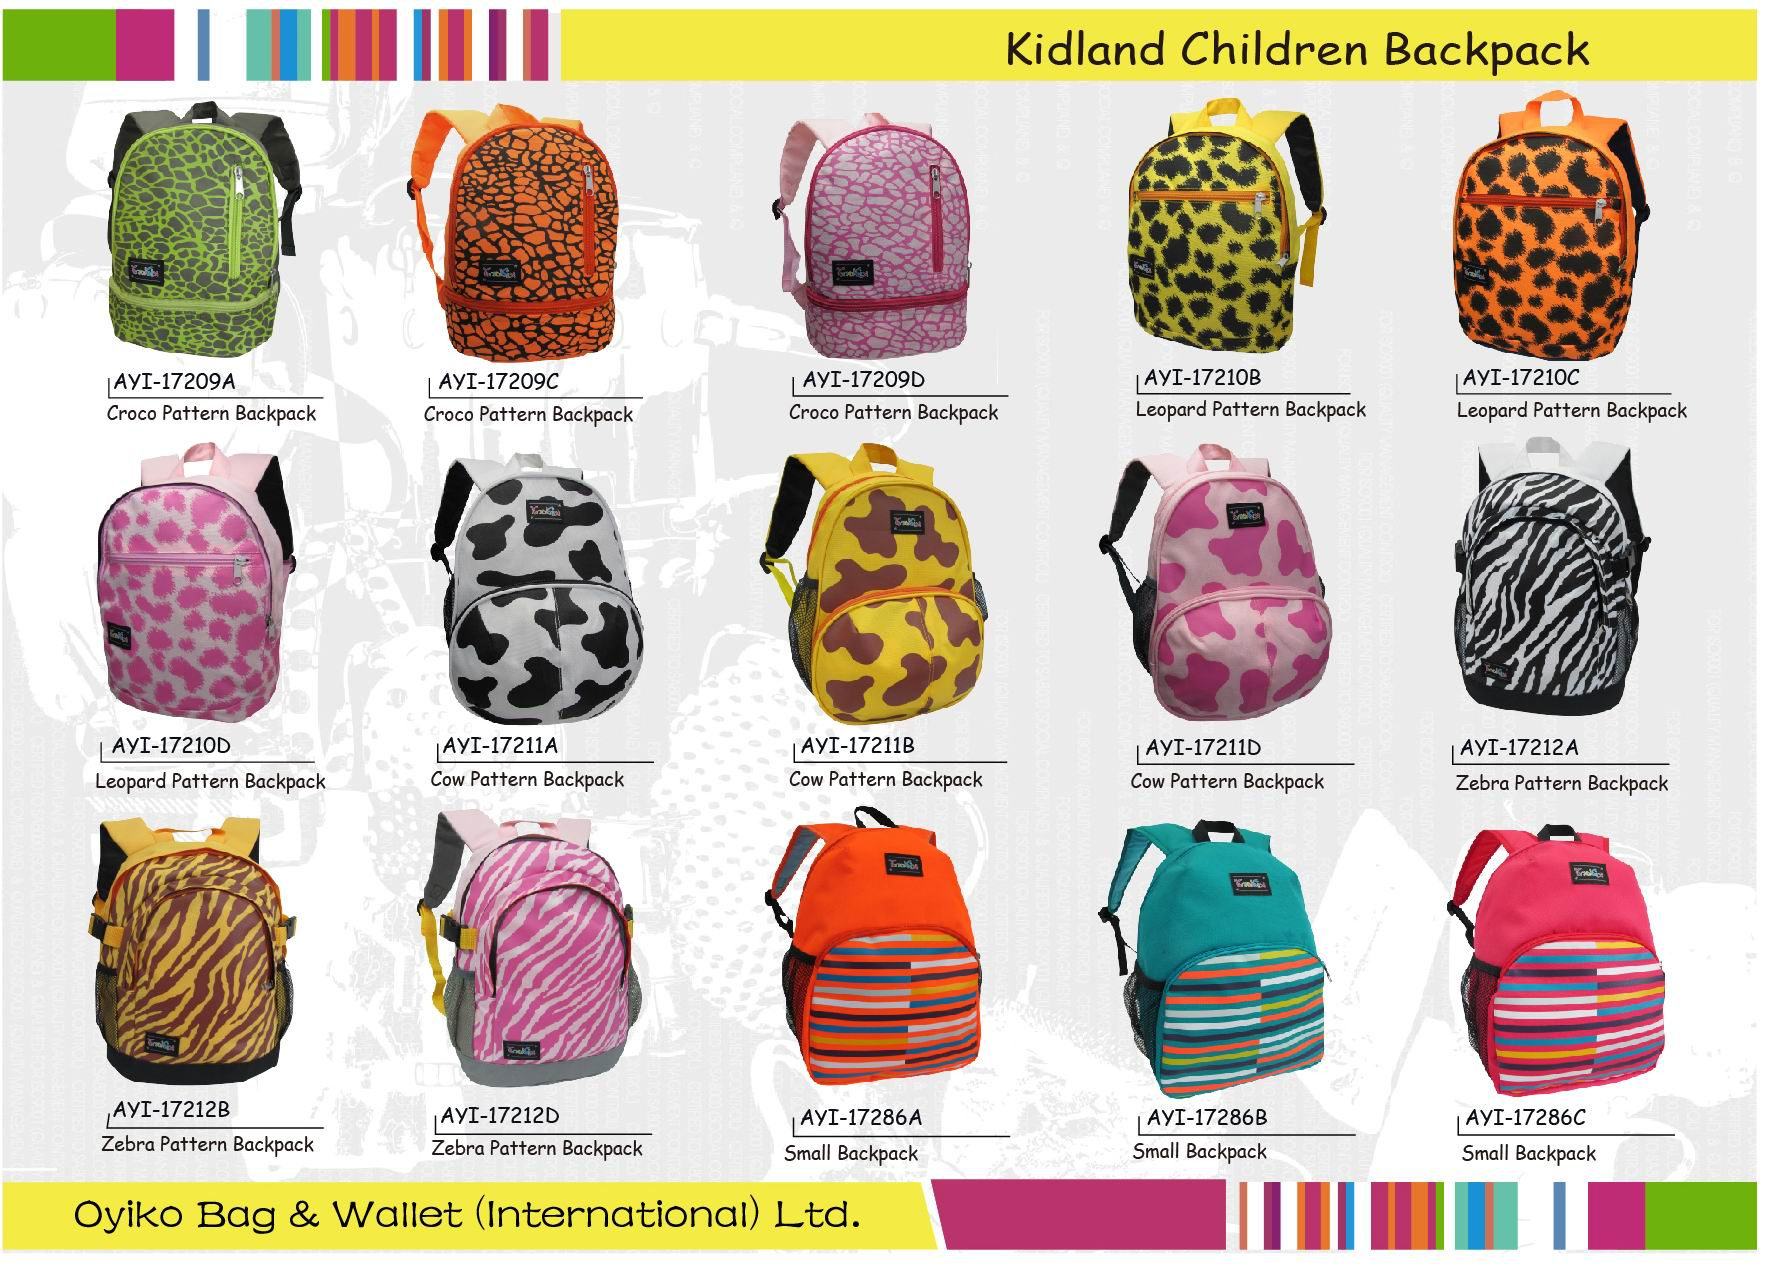 Kidland Children Backpack.jpg